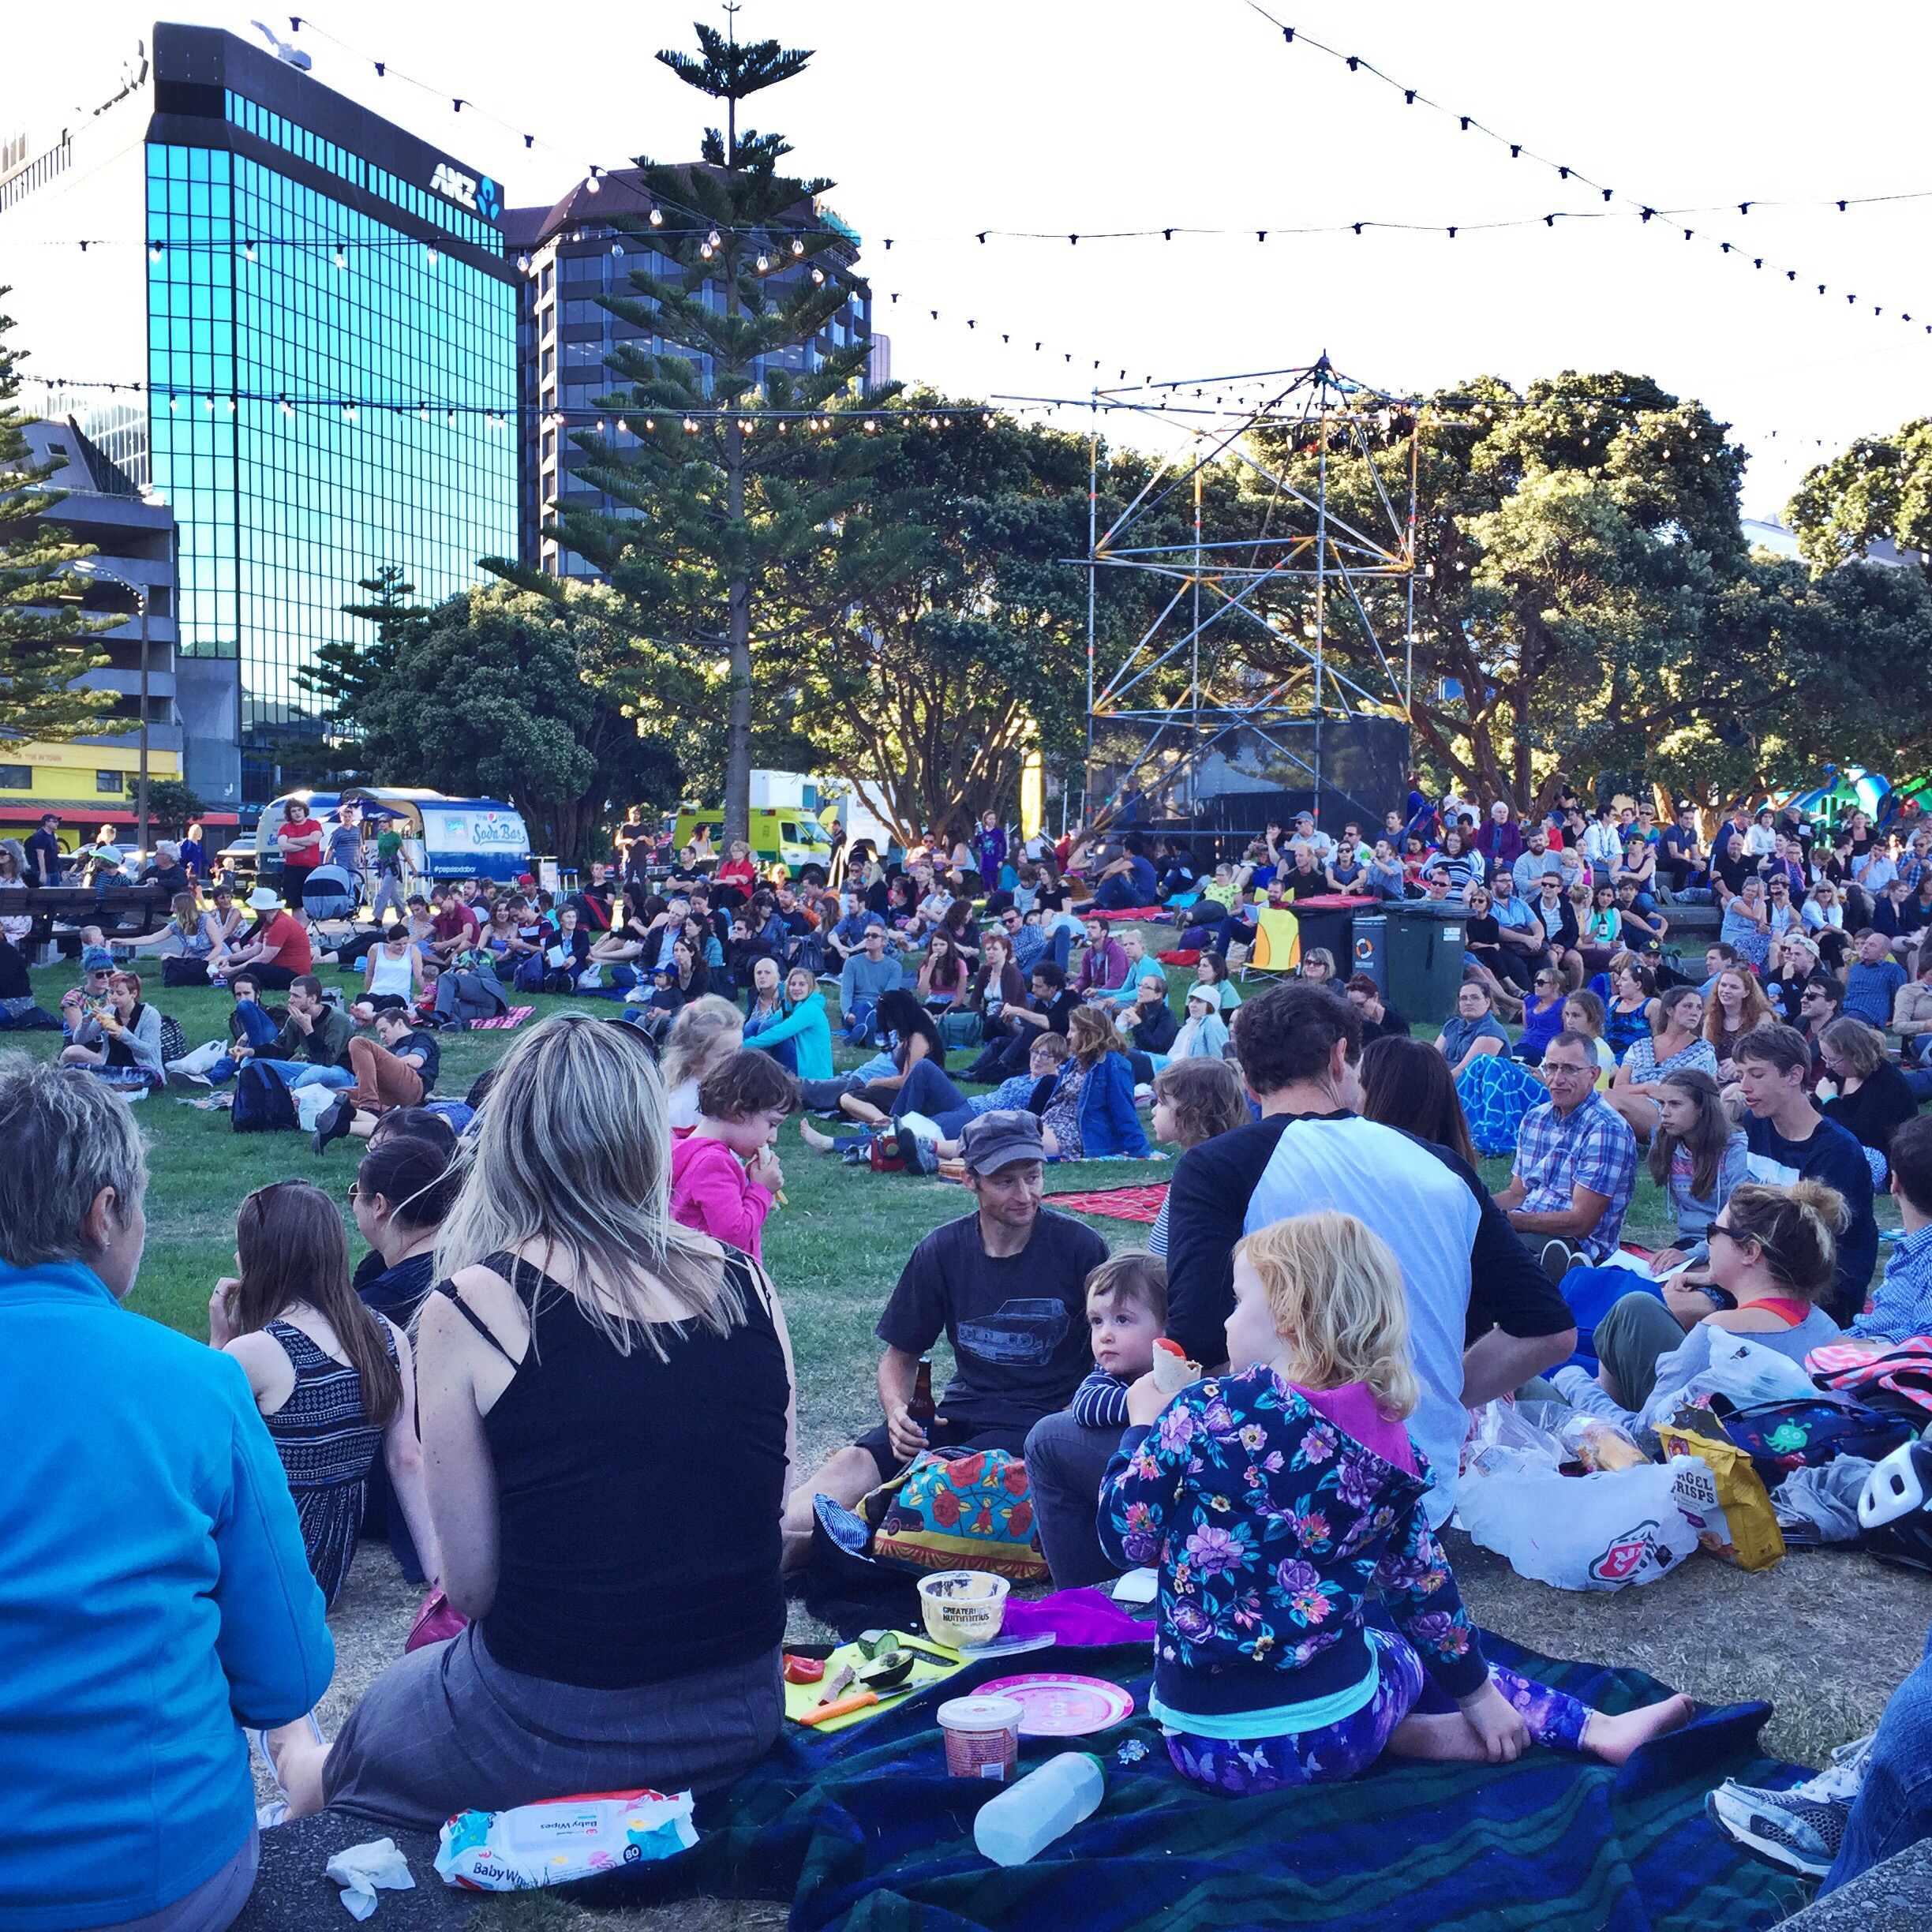 Free music in the park with a great turnout of families eating dinner and listening to sea shanties (who even knew?) before the main act.